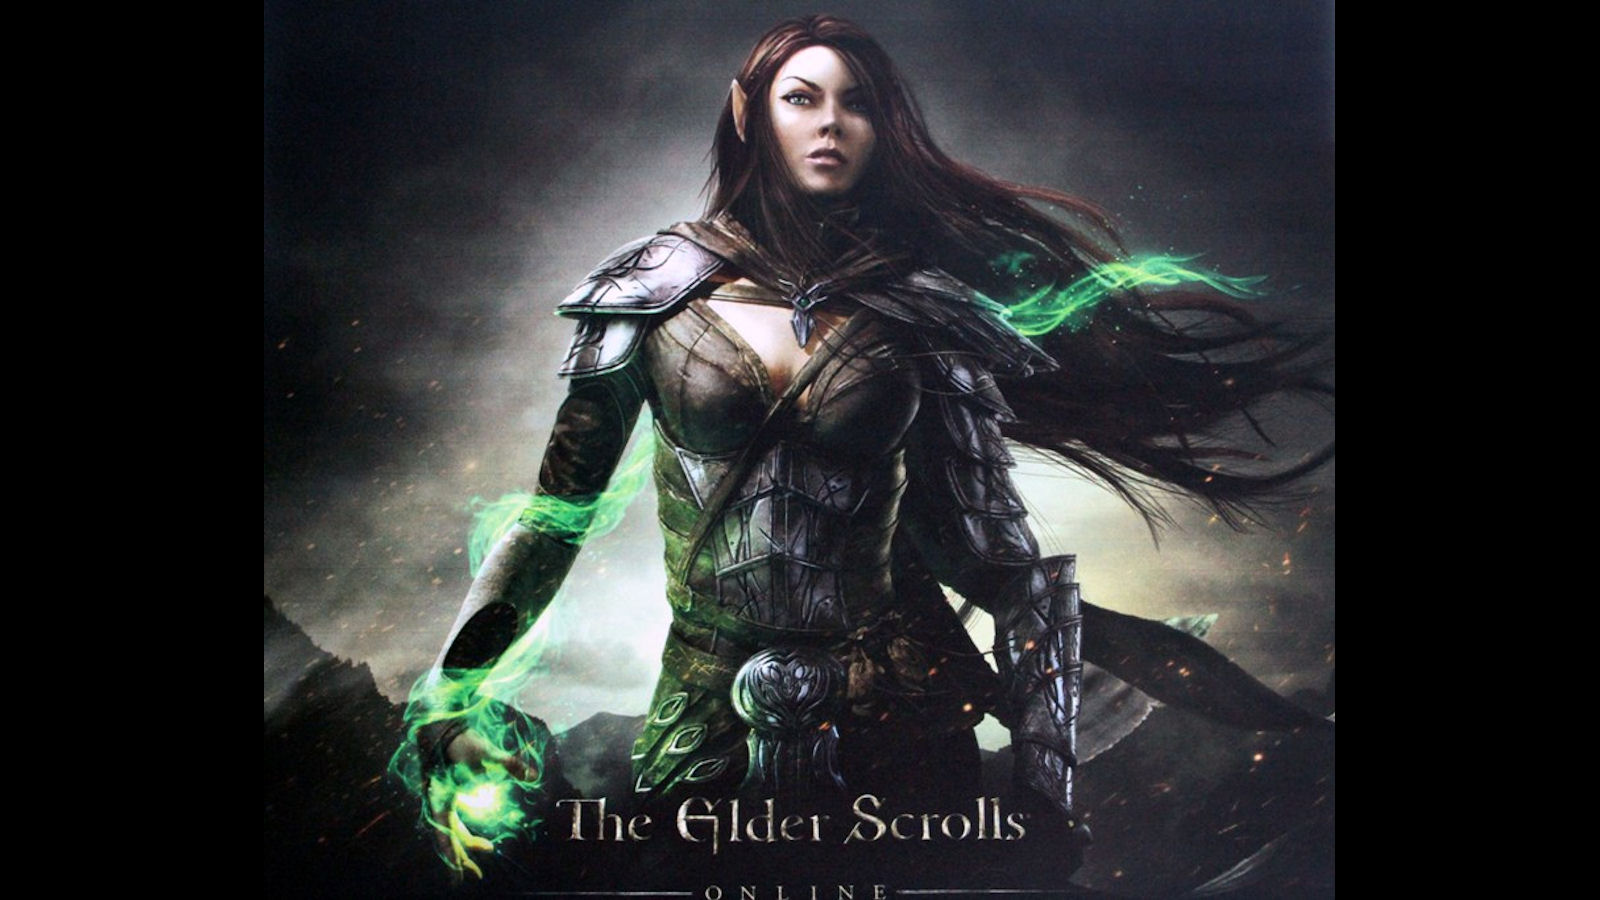 The Elder Scrolls Online Wallpaper Hd Video Games Blogger